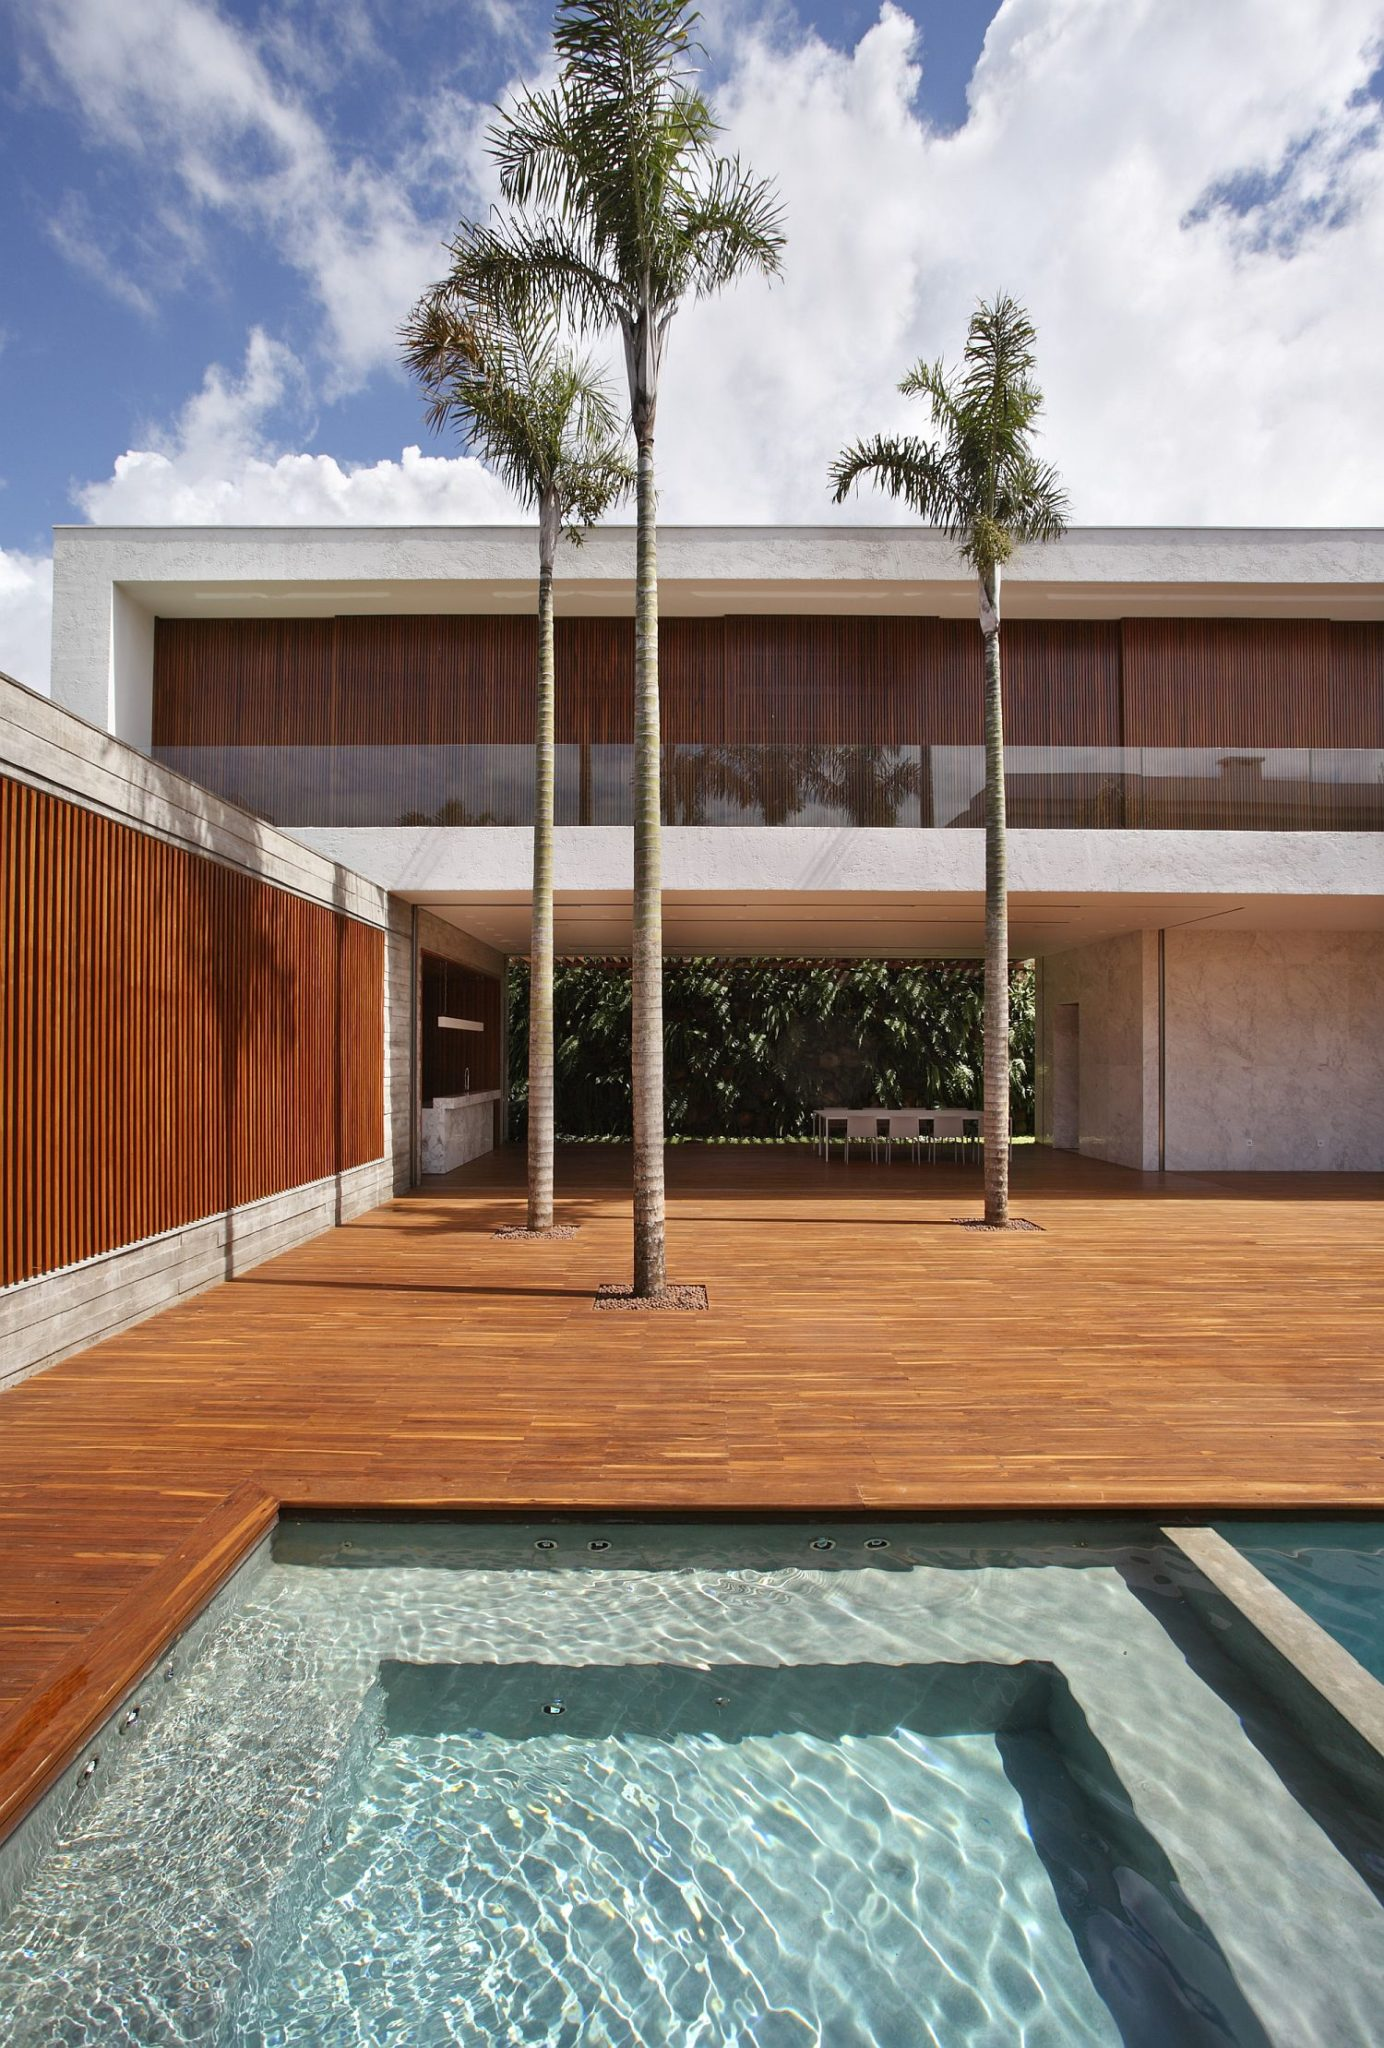 Pool area and large central courtyard of the spacious Brazilian family house